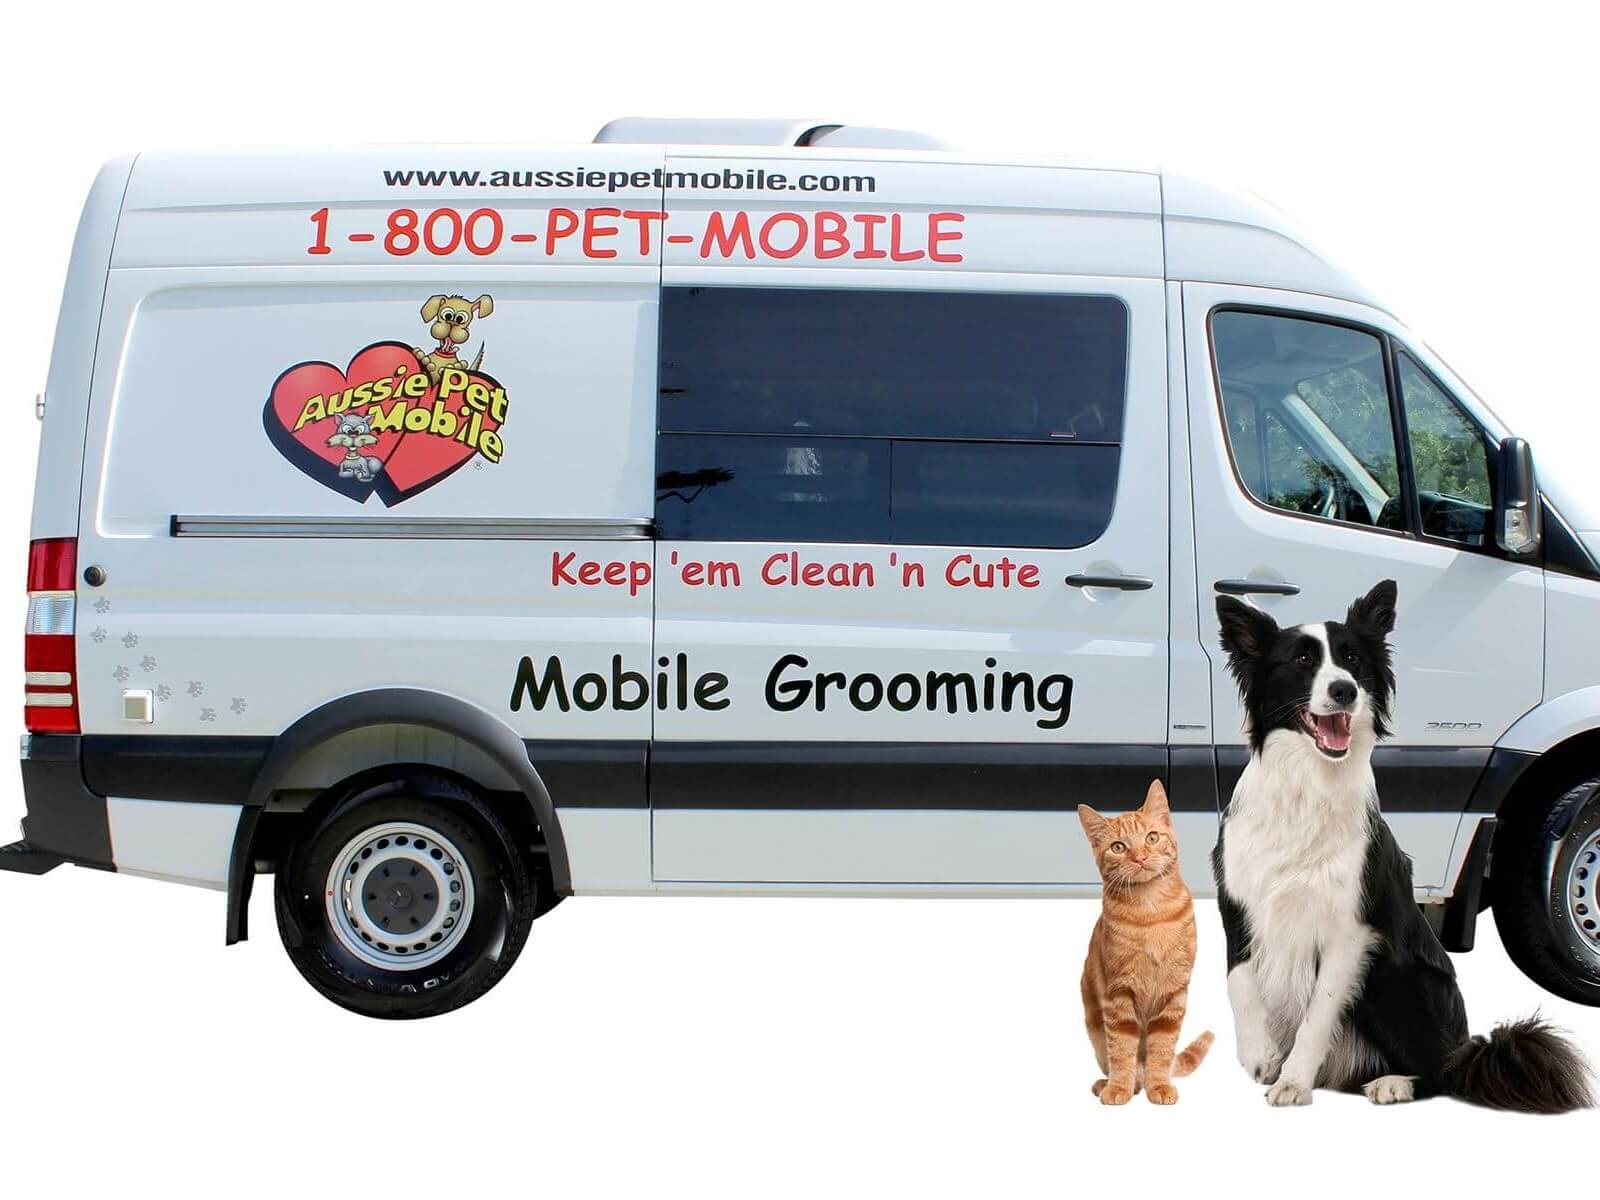 Aussie Pet Mobile Central Albuquerque | Mobile Grooming for Cats & Dogs